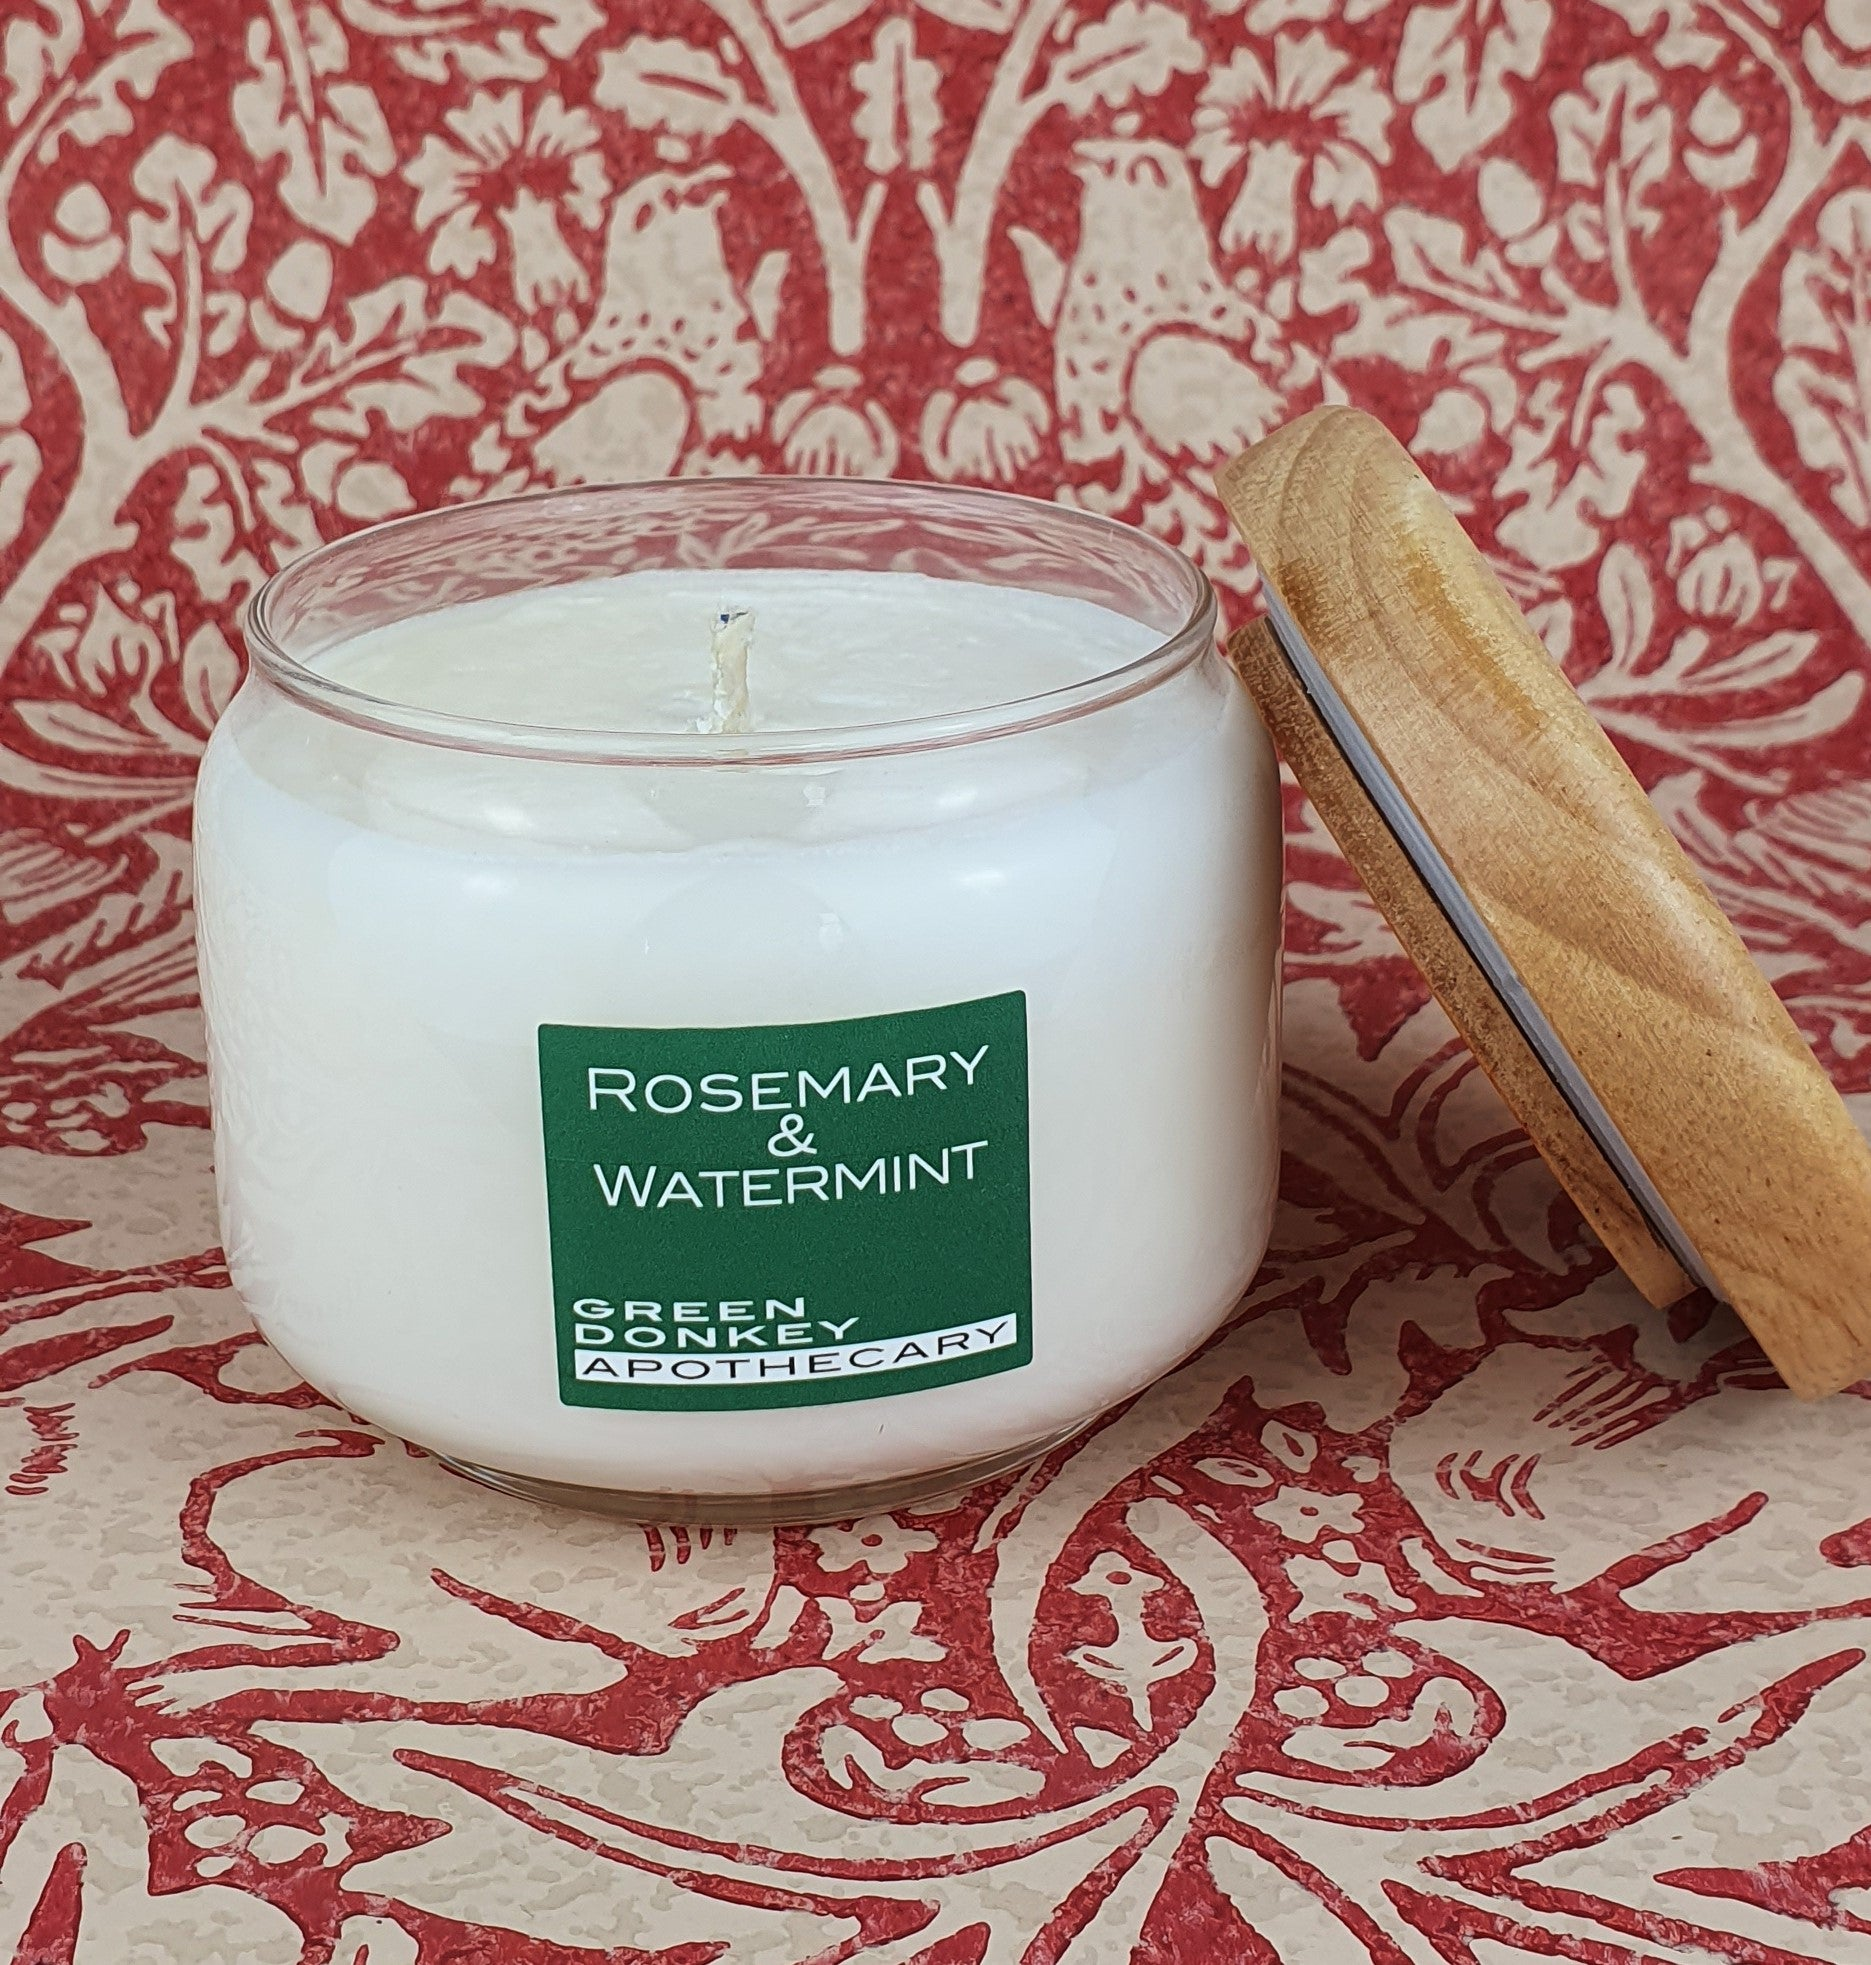 Rosemary & Watermint Soya Pop Candle 325ml